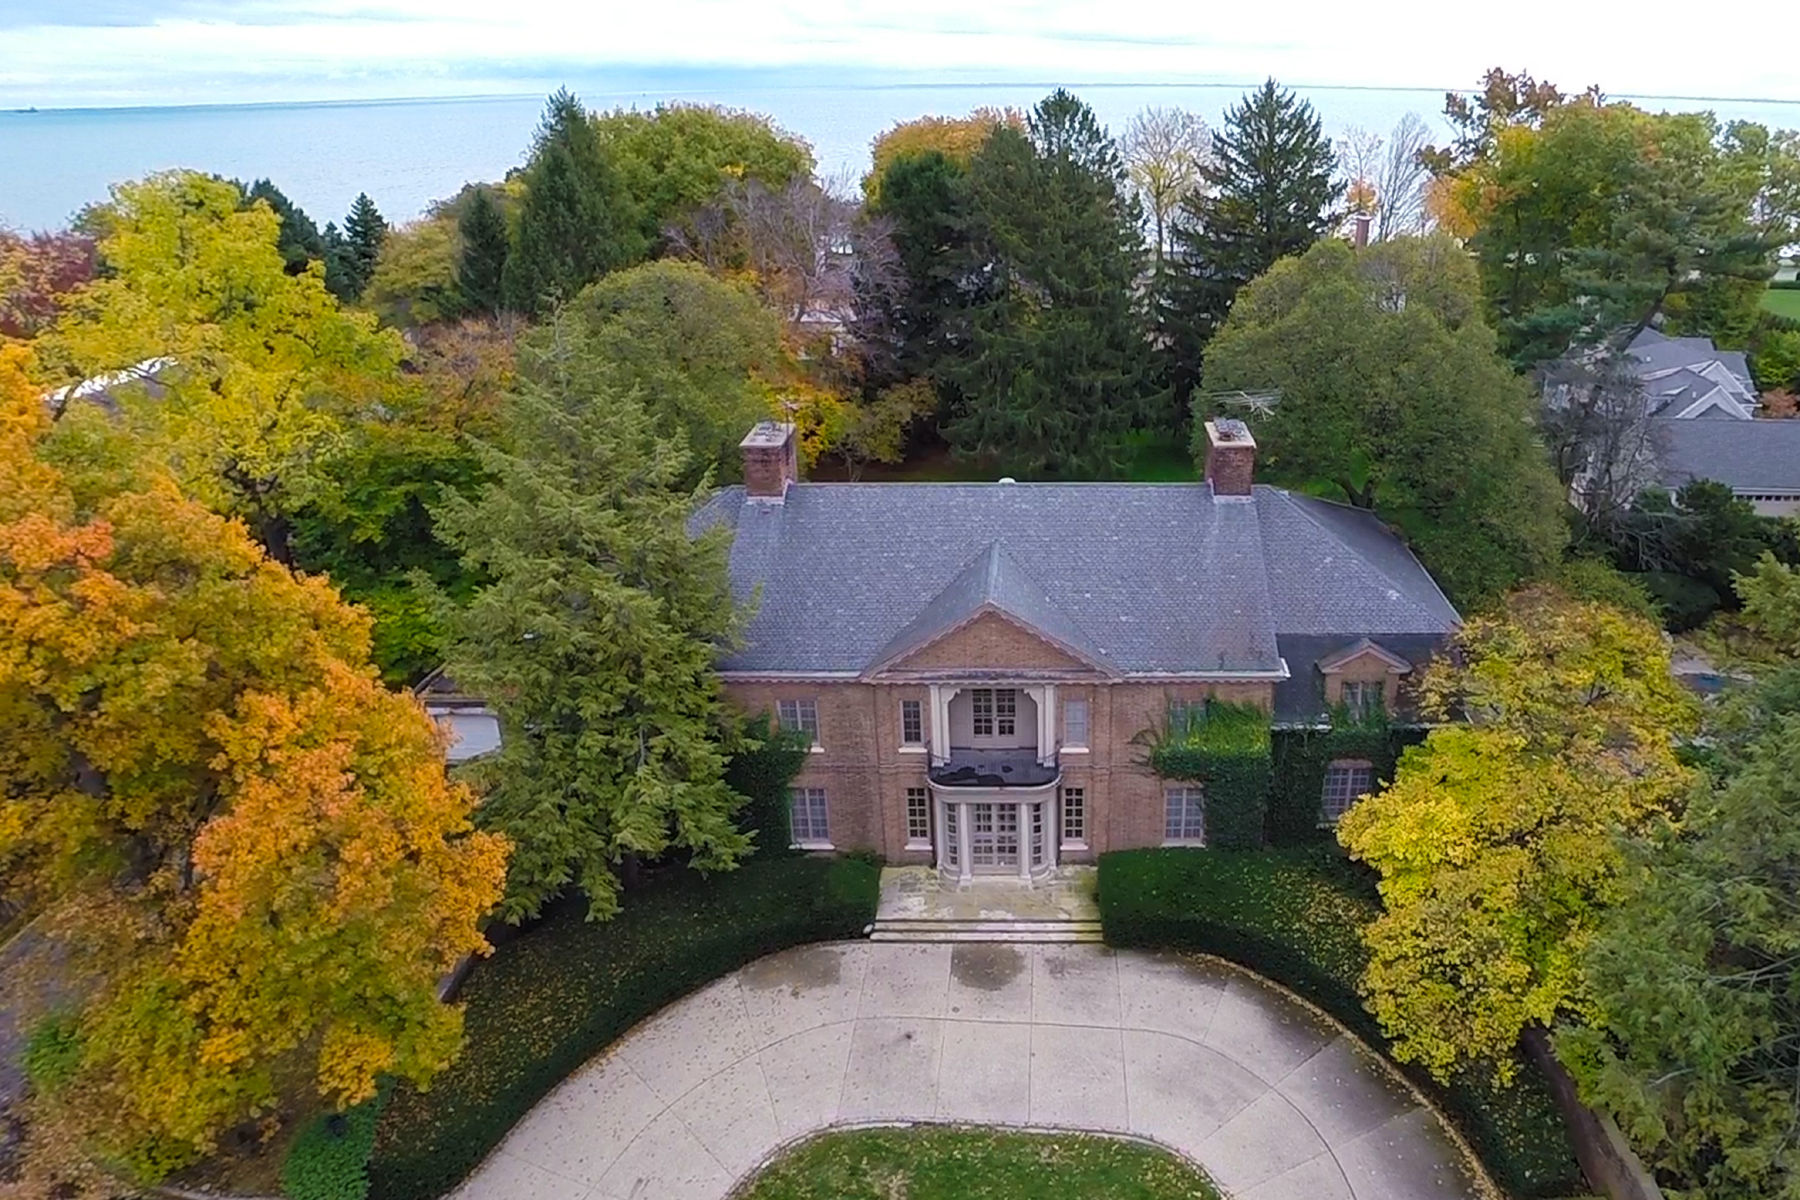 Casa Unifamiliar por un Venta en Grosse Pointe Farms 30-A Preston Grosse Pointe Farms, Michigan, 48236 Estados Unidos